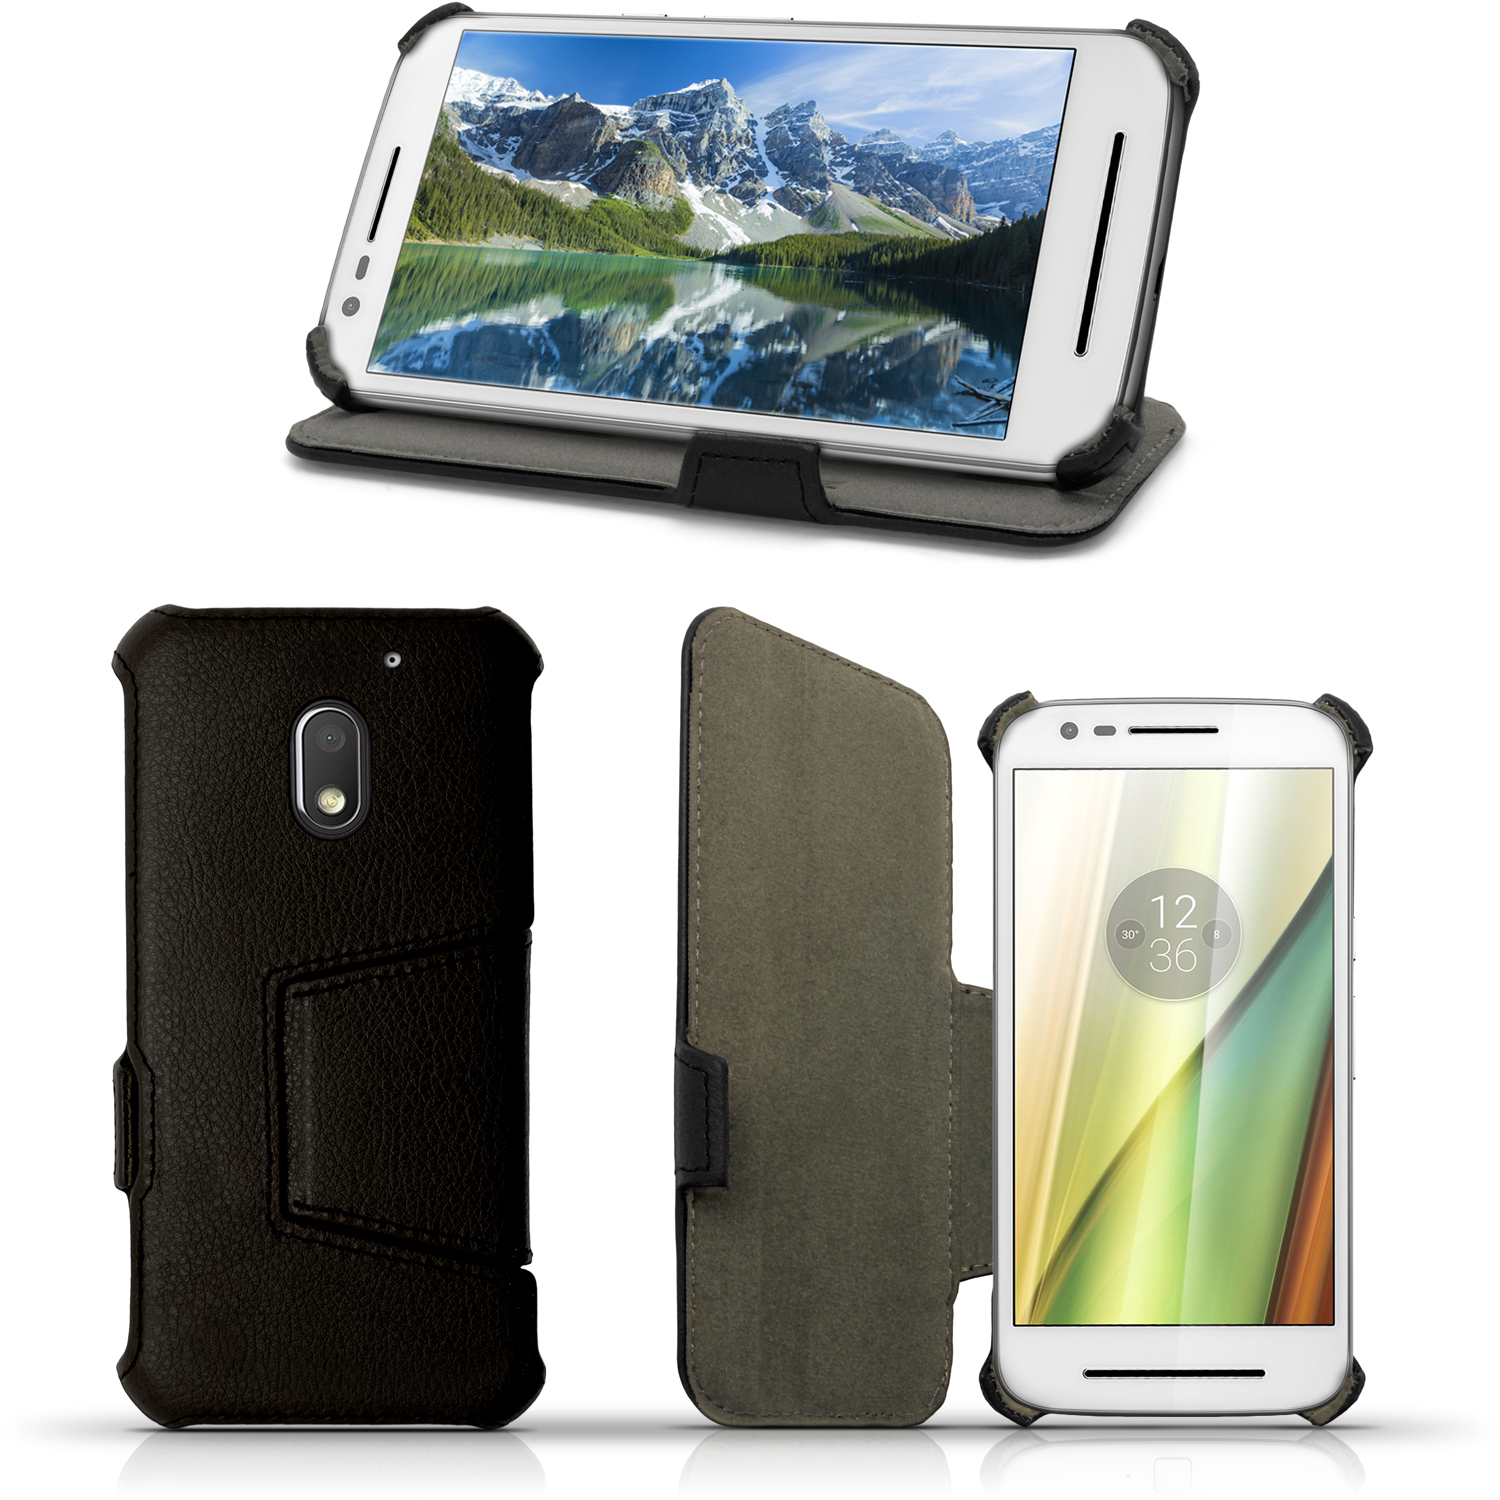 iGadgitz Folio PU Leather Case Cover for Motorola Moto E 3rd Generation (E3) with Multi-Angle Stand + Screen Protector